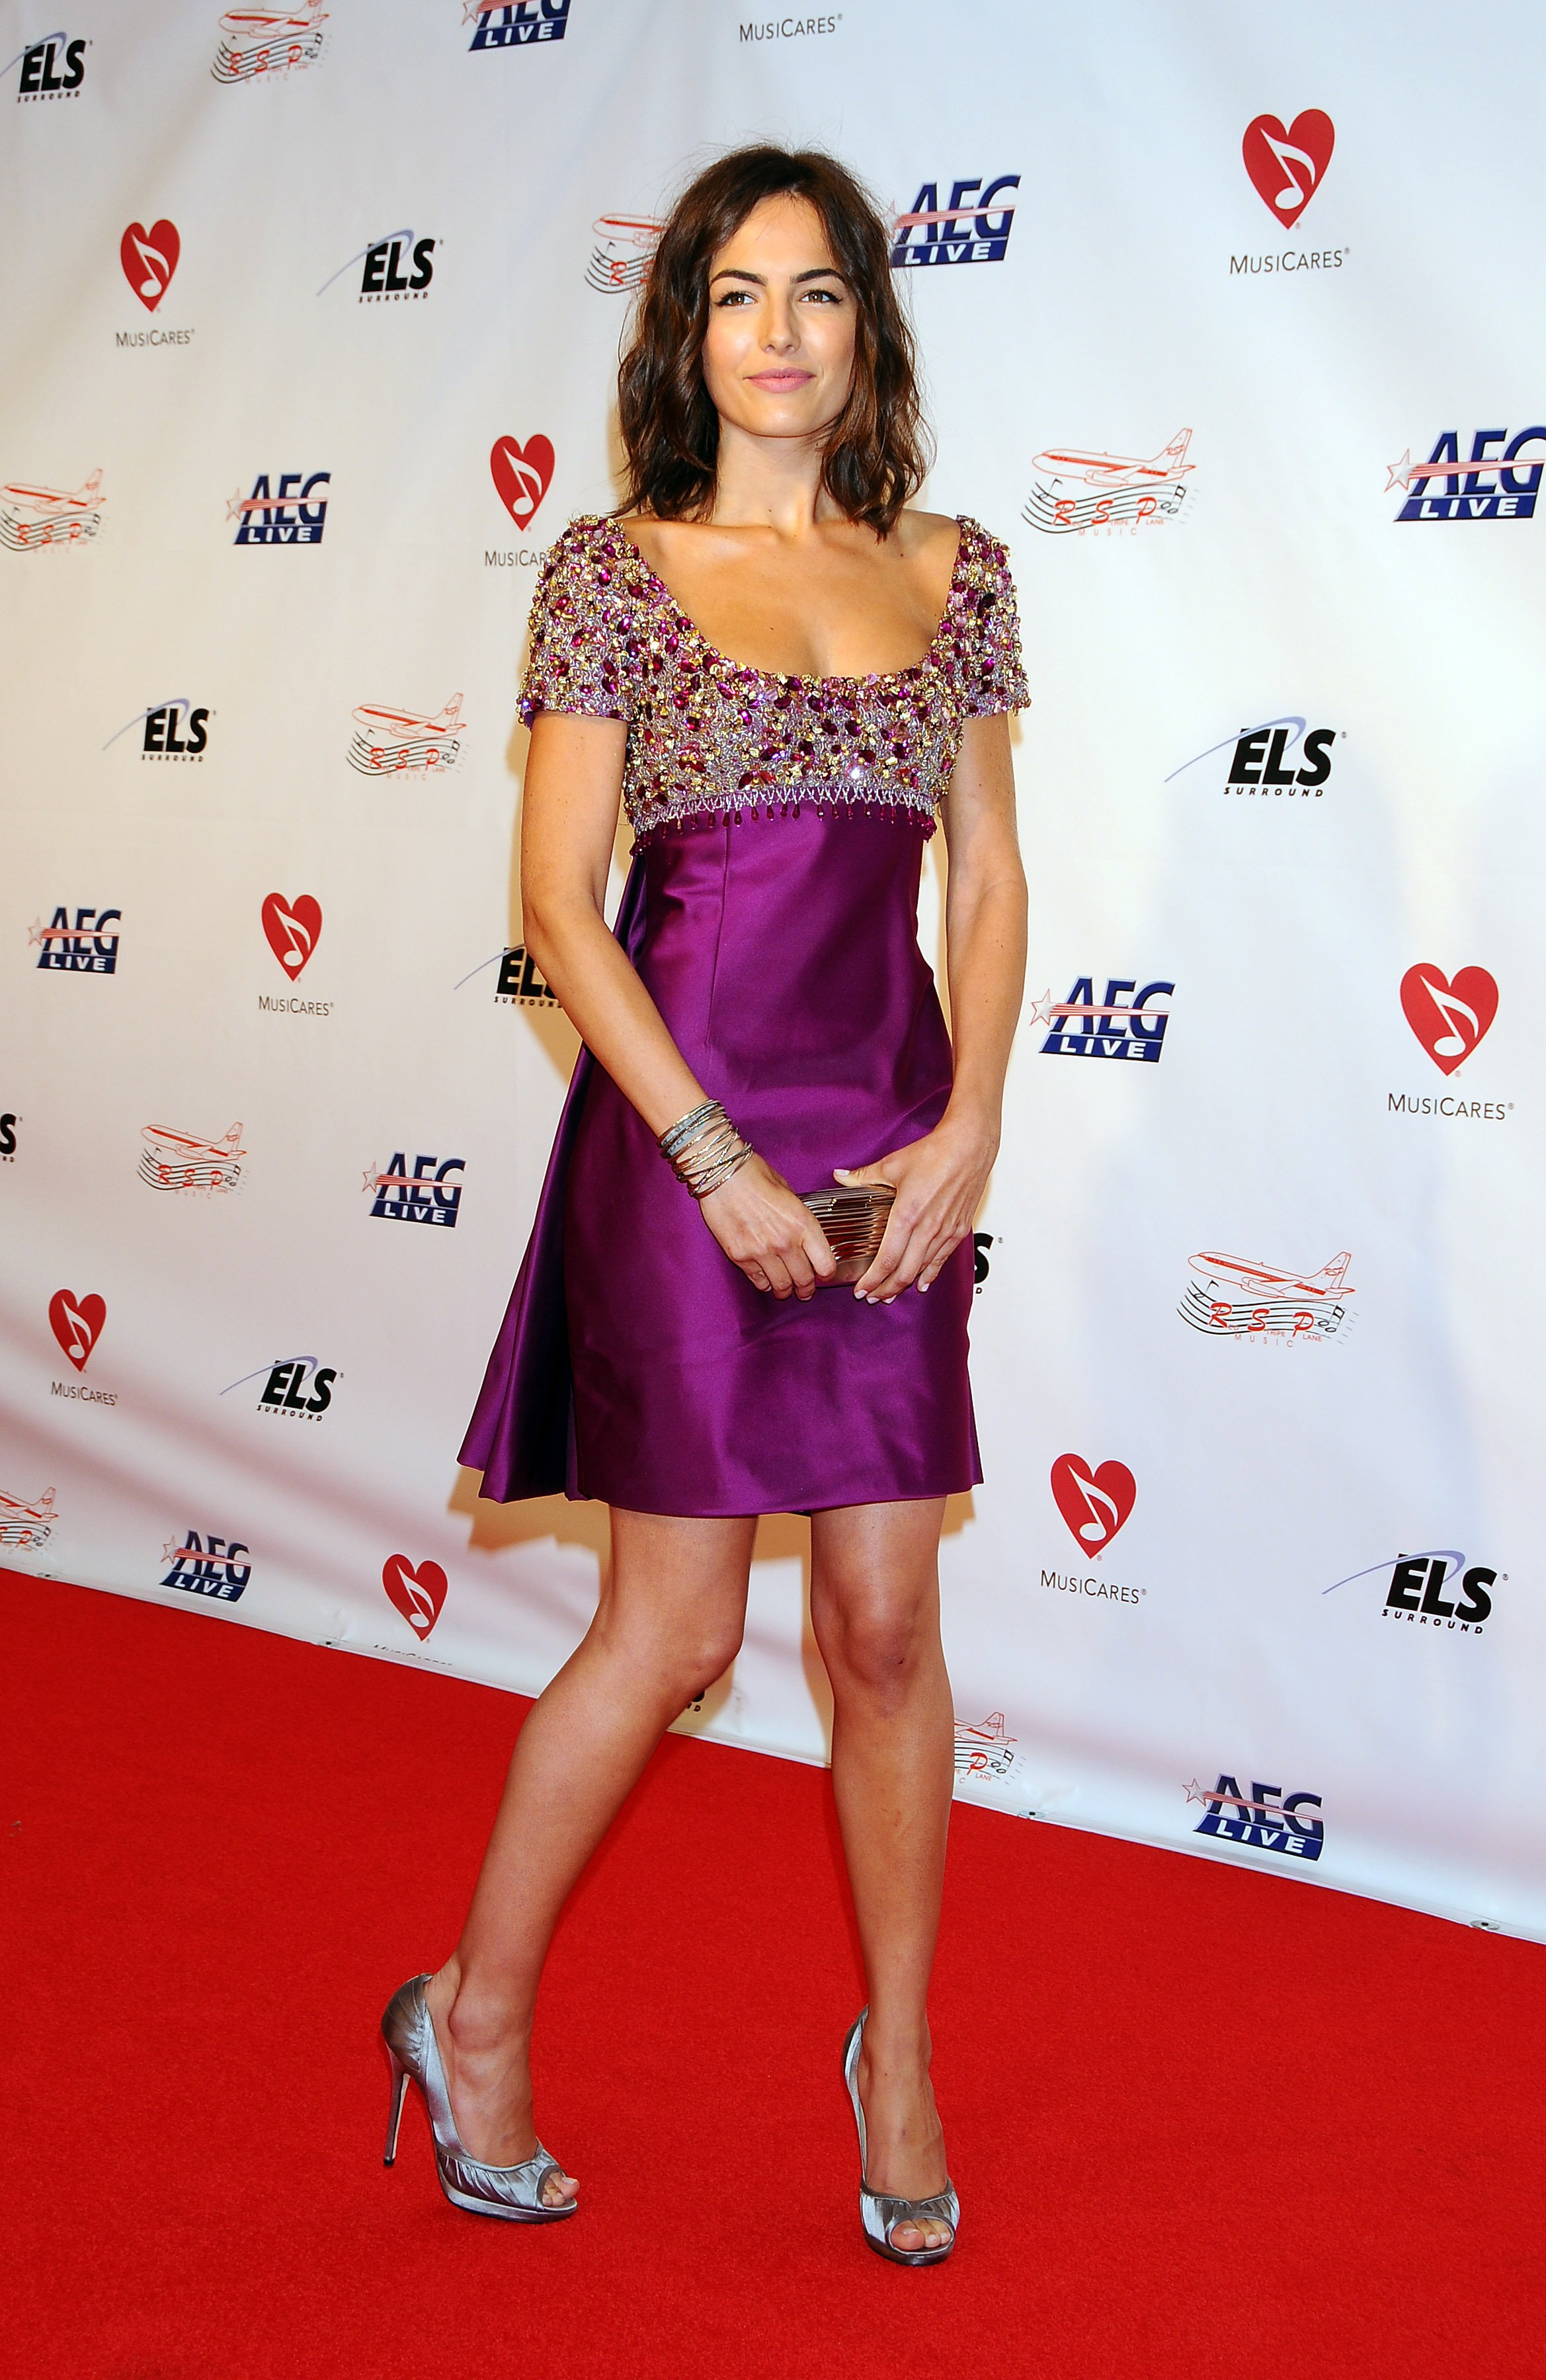 06976_Celebutopia-Camilla_Belle_arrives_at_the_2009_MusiCares_Person_Of_The_Year_Gala-03_122_68lo.JPG